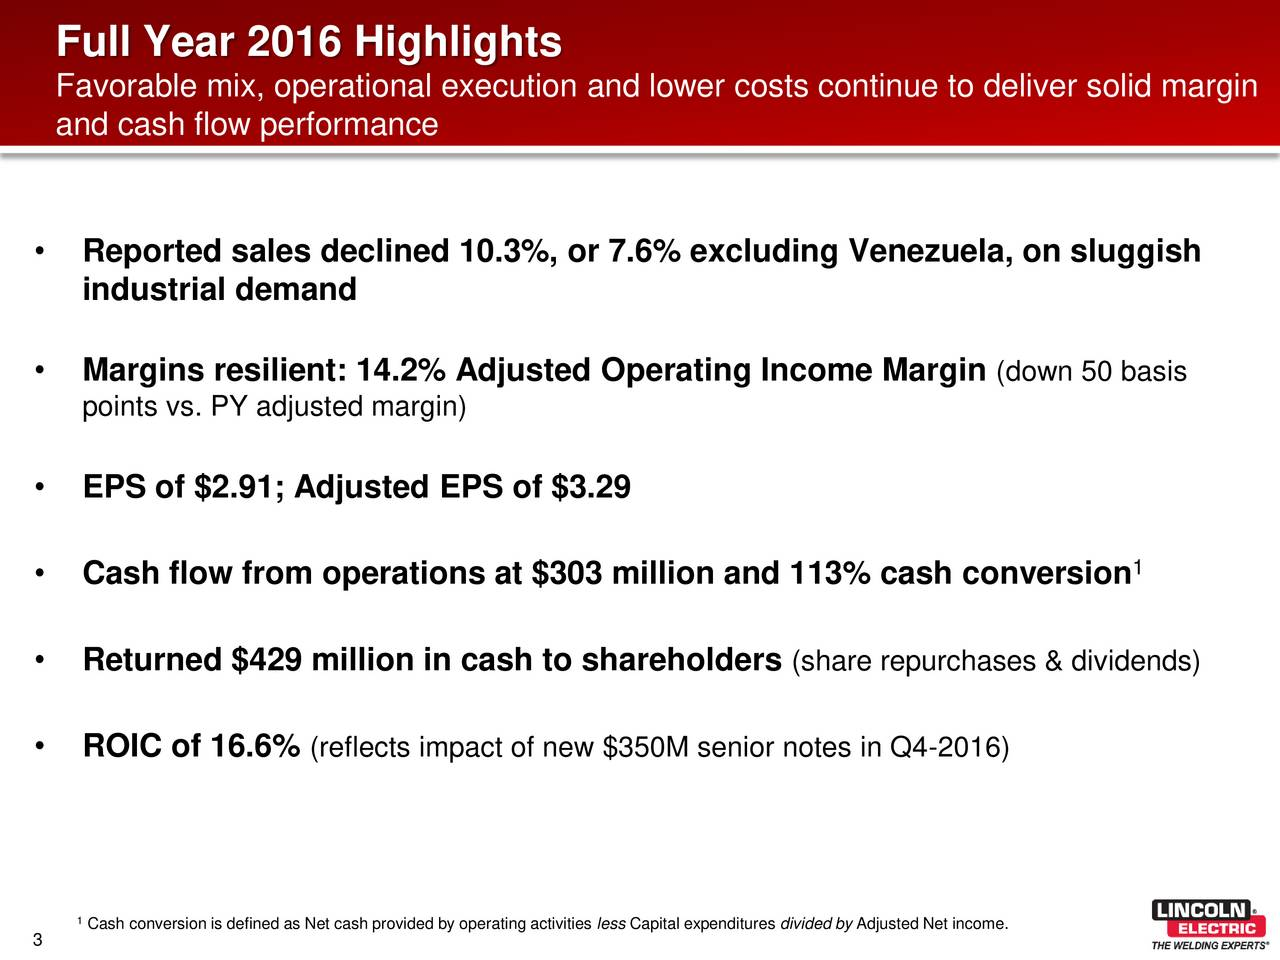 Favorable mix, operational execution and lower costs continue to deliver solid margin and cash flow performance Reported sales declined 10.3%, or 7.6% excluding Venezuela, on sluggish industrial demand Margins resilient: 14.2% Adjusted Operating Income Margin (down 50 basis points vs. PY adjusted margin) EPS of $2.91; Adjusted EPS of $3.29 Cash flow from operations at $303 million and 113% cash conversion 1 Returned $429 million in cash to shareholders (share repurchases & dividends) ROIC of 16.6% (reflects impact of new $350M senior notes in Q4-2016) 1Cash conversion is defined as Net cash provided by operating activities less Capital expenditures divided by Adjusted Net income.